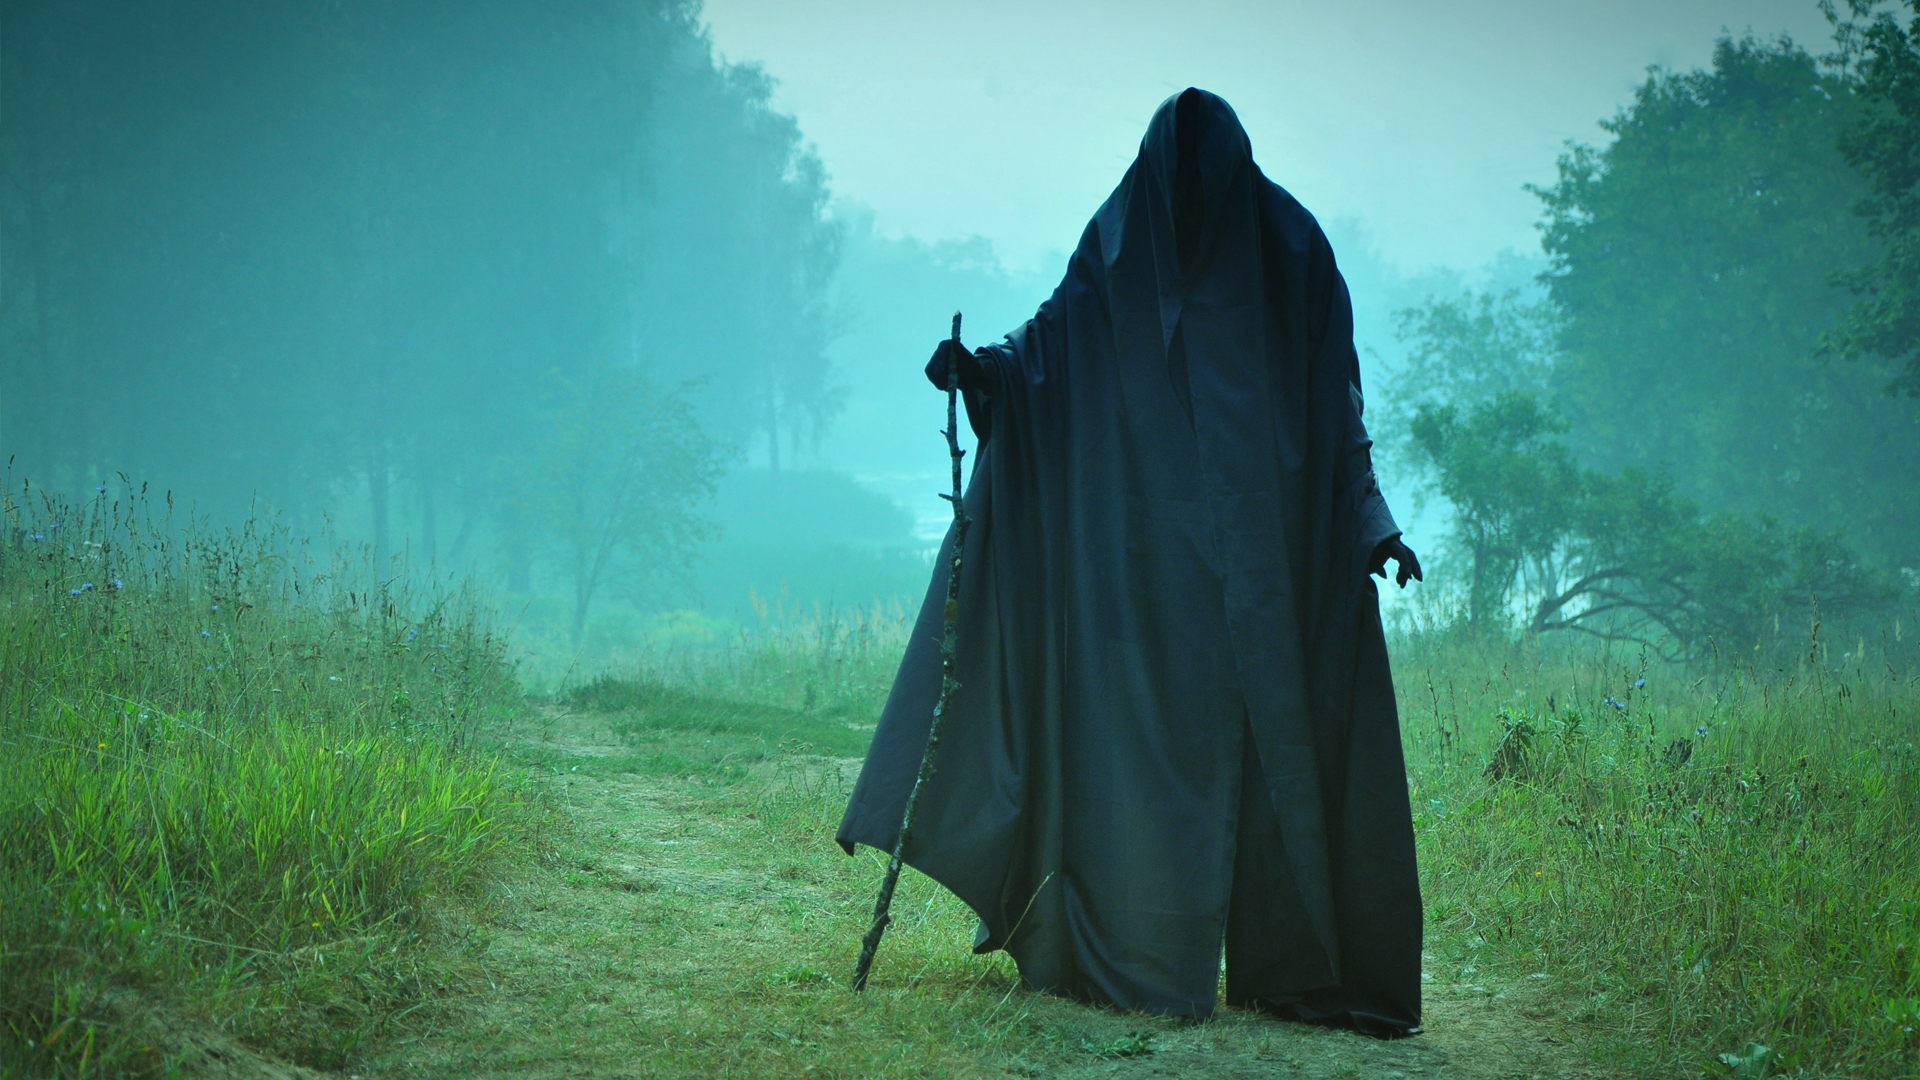 dark horror grim reaper gothic death landscapes mood spirits ghost 1920x1080